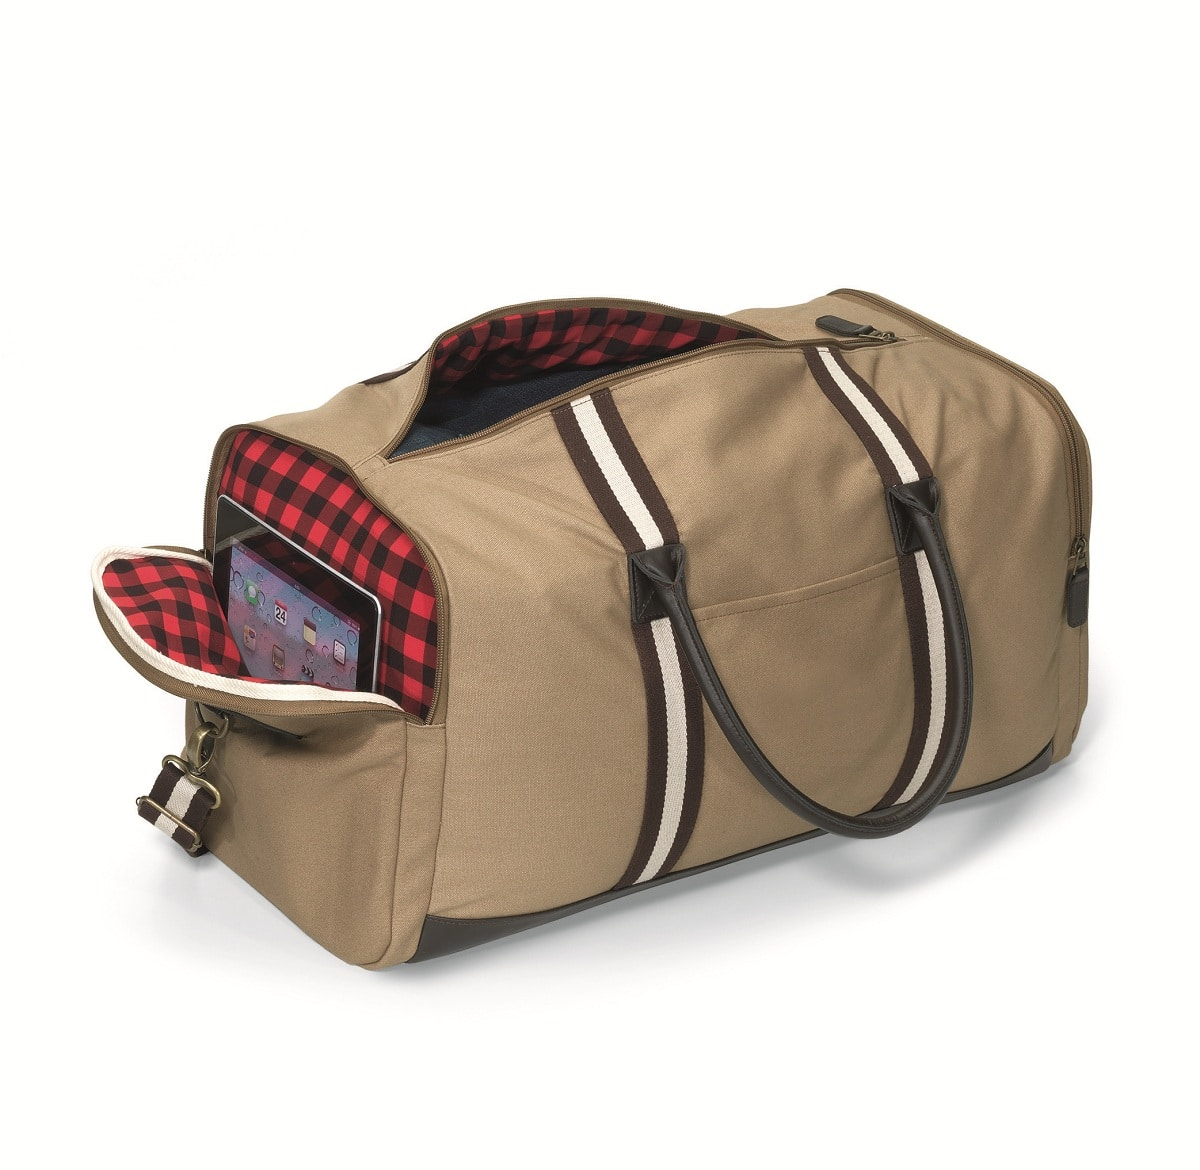 A spacious, padded pocket for your tablet is located on the end of the duffel bag.